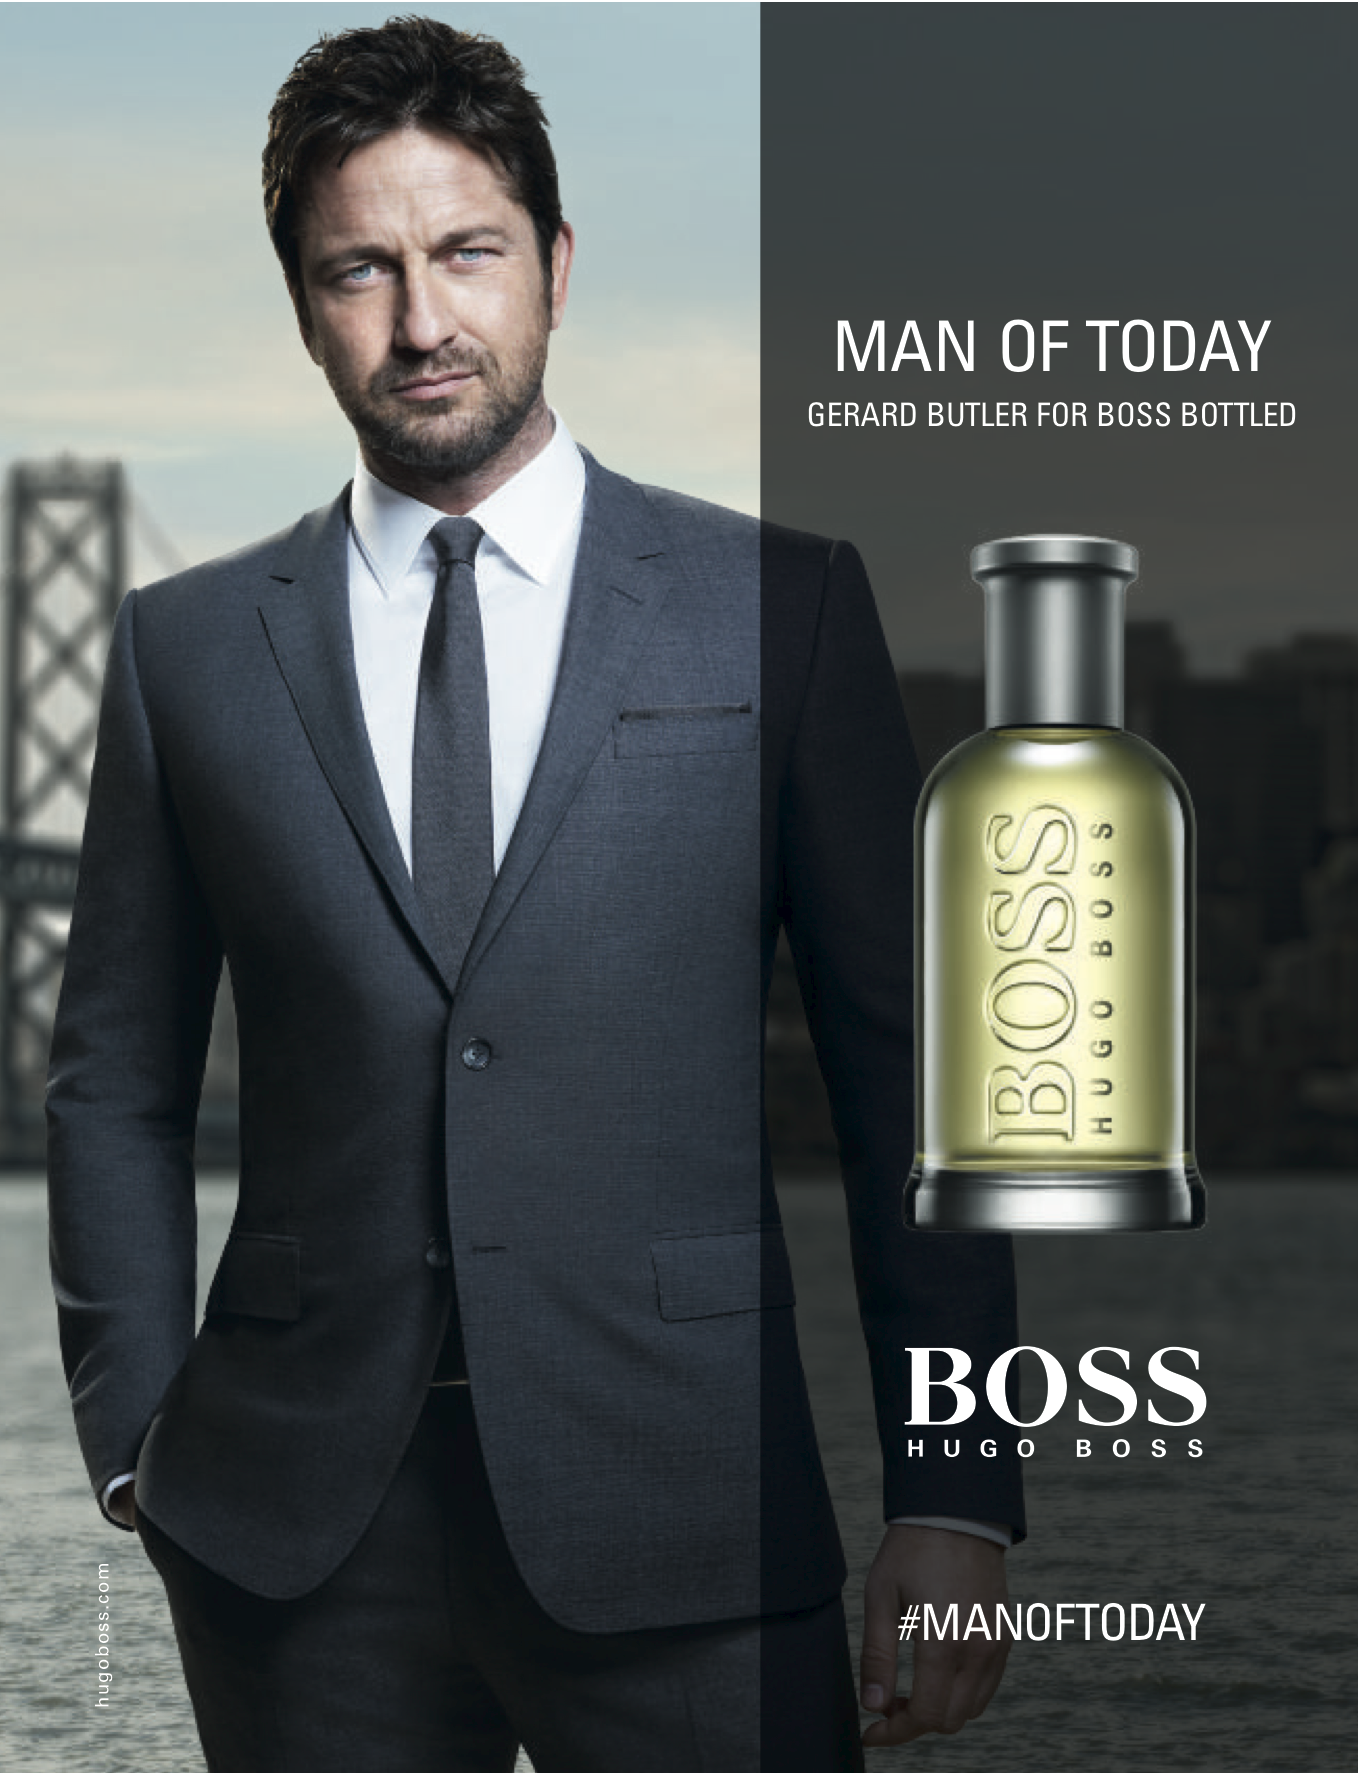 Pin By Pinsbykk On Fragrances In 2019 Gerard Butler Hugo Boss